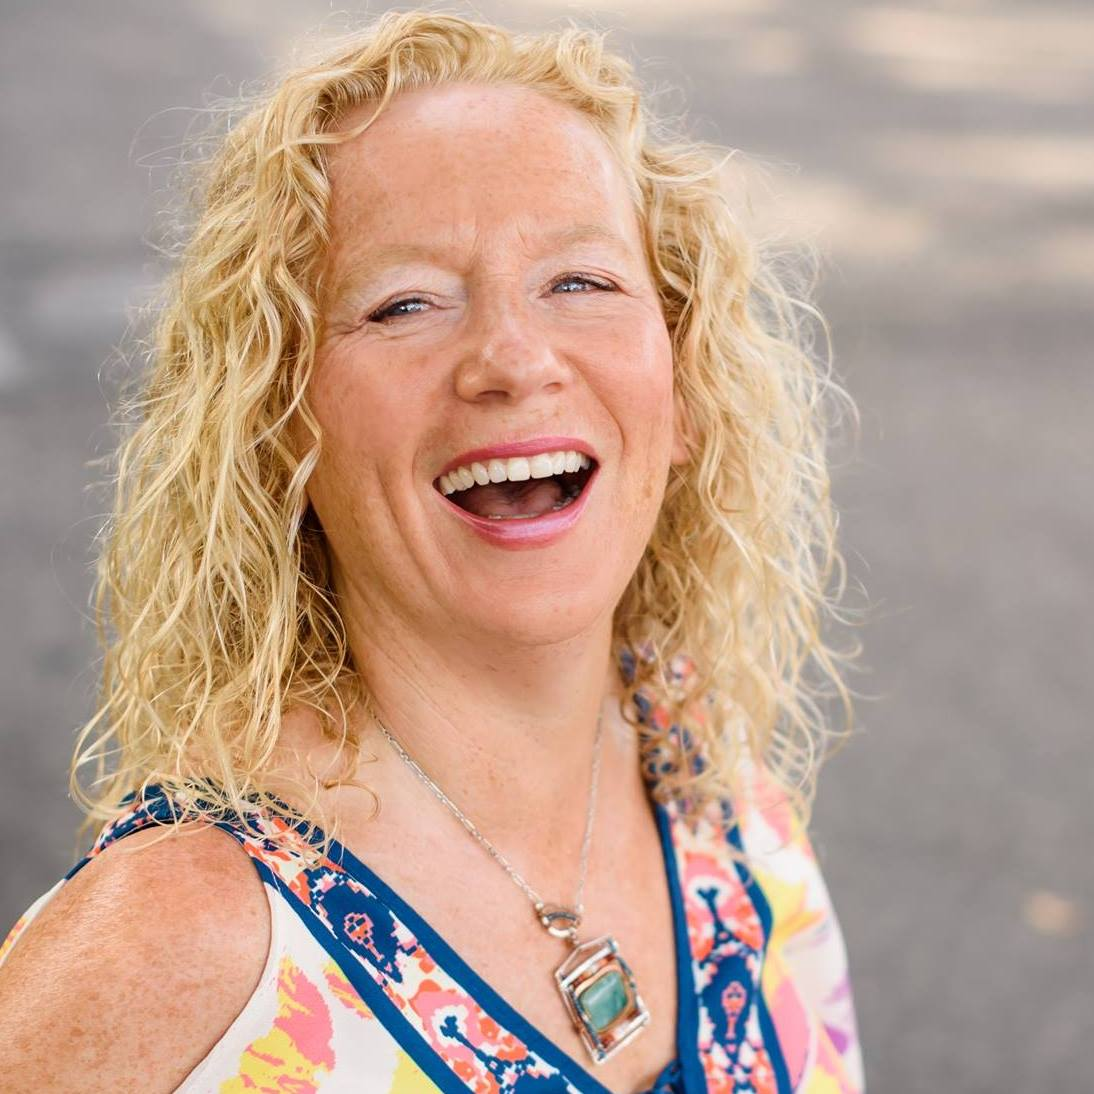 Meet Paula Jennings - Spirit Animal: BeeThe five things that stir her soul:• Communing with the Divine• Floating in the ocean•Watching the sun rise and set•Dancing and singing with wild abandon•Smiling eyes staring back at me